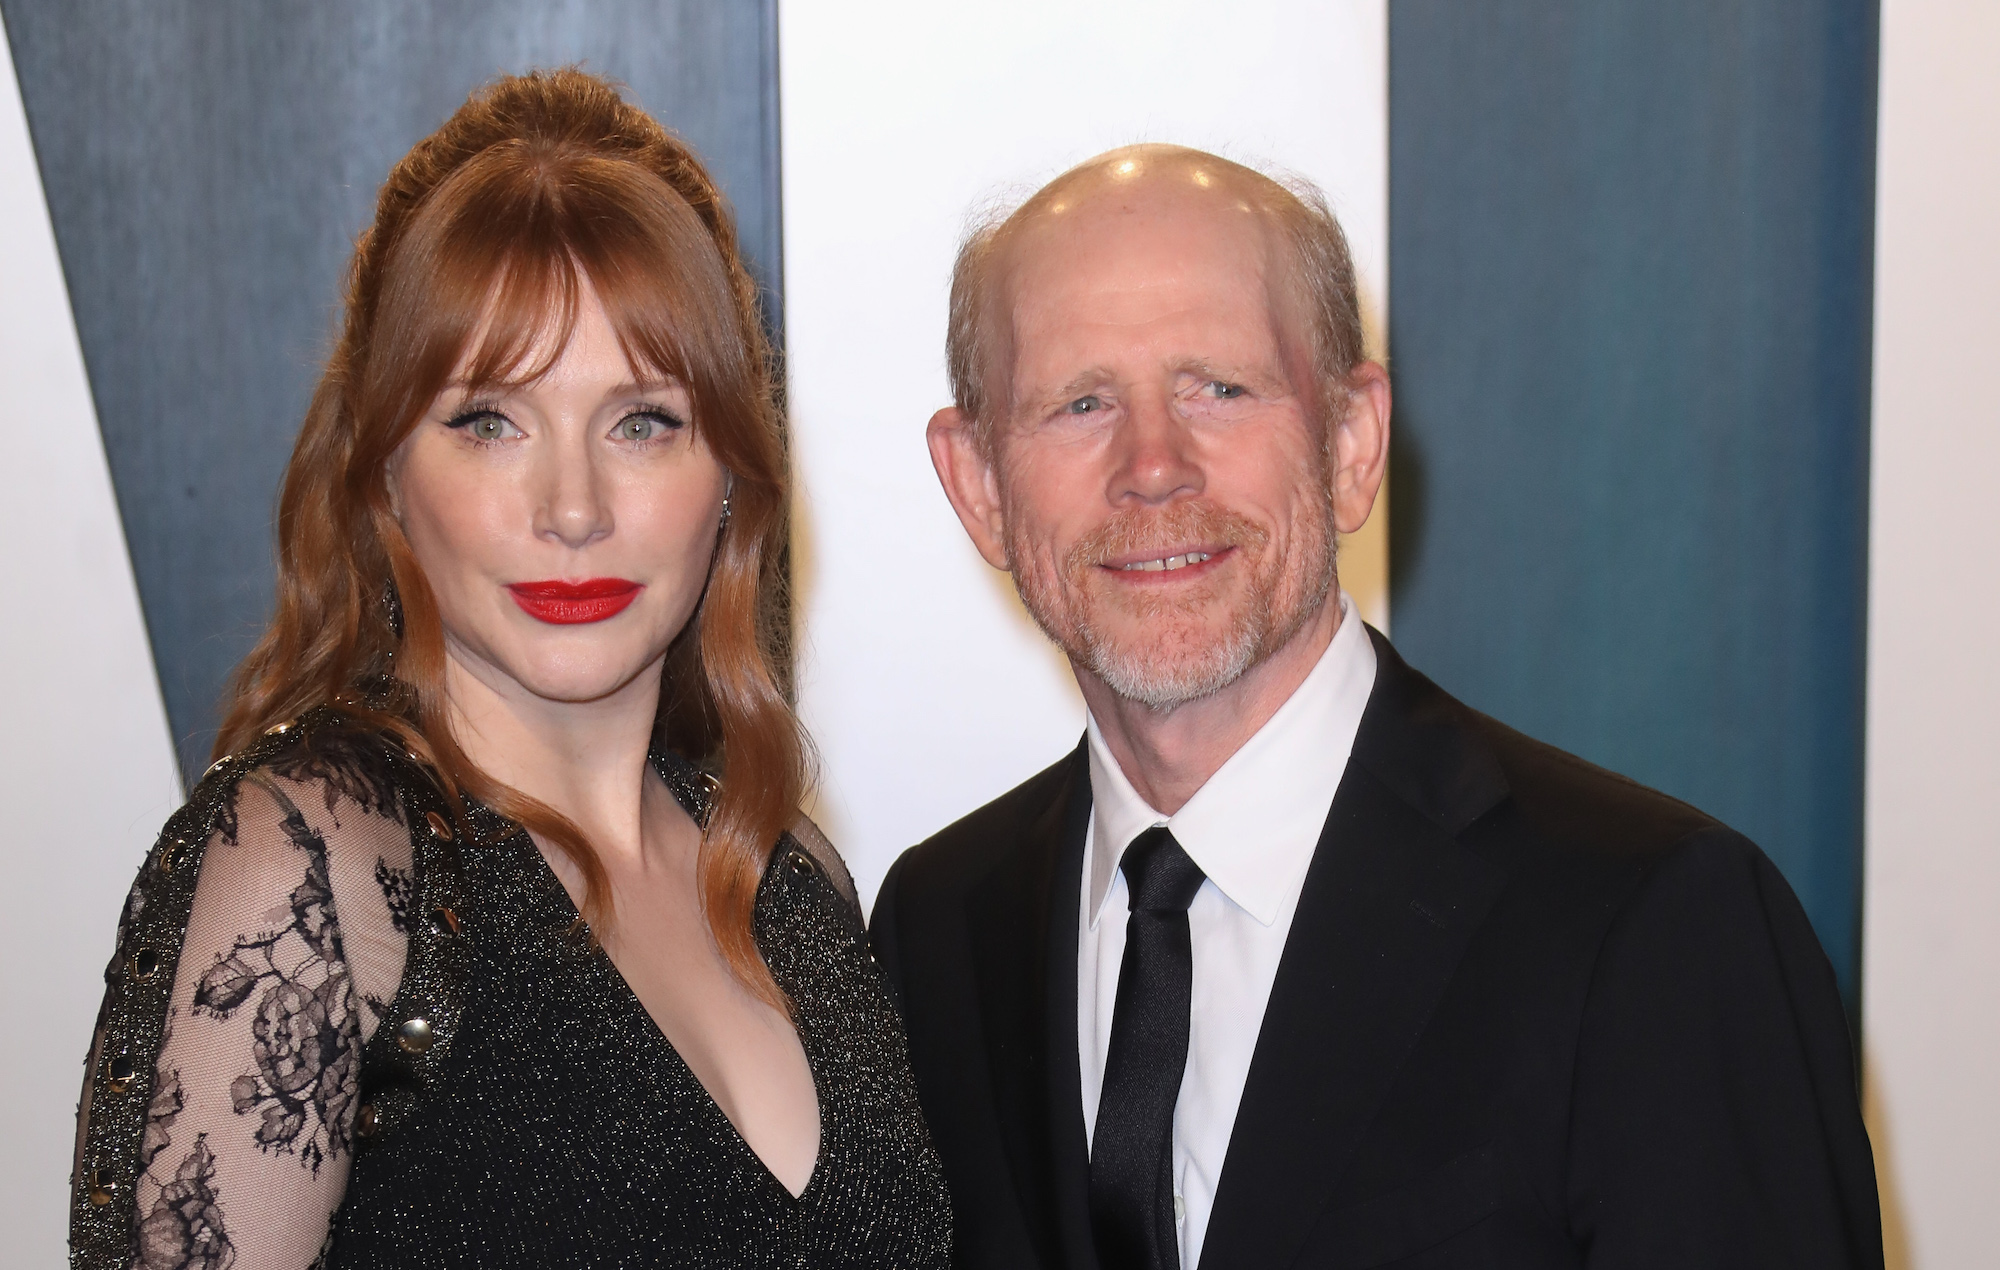 Ron Howard reacts to Bryce Dallas Howard's tribute in 'The Mandalorian'